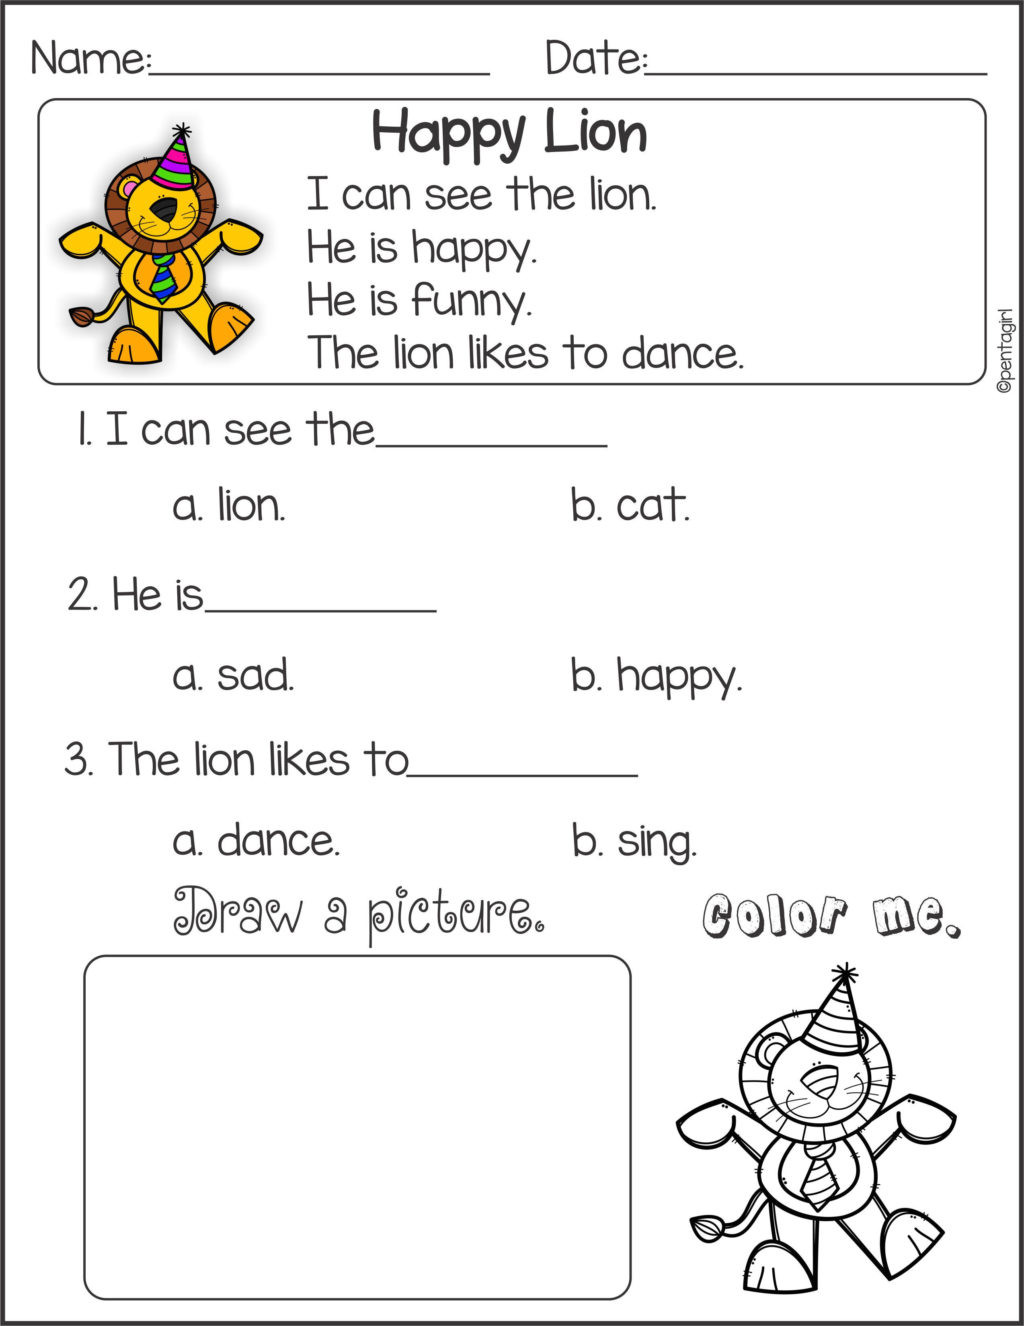 Main Idea Worksheets Third Grade Worksheet Free Third Grade Reading Worksheets to Print for